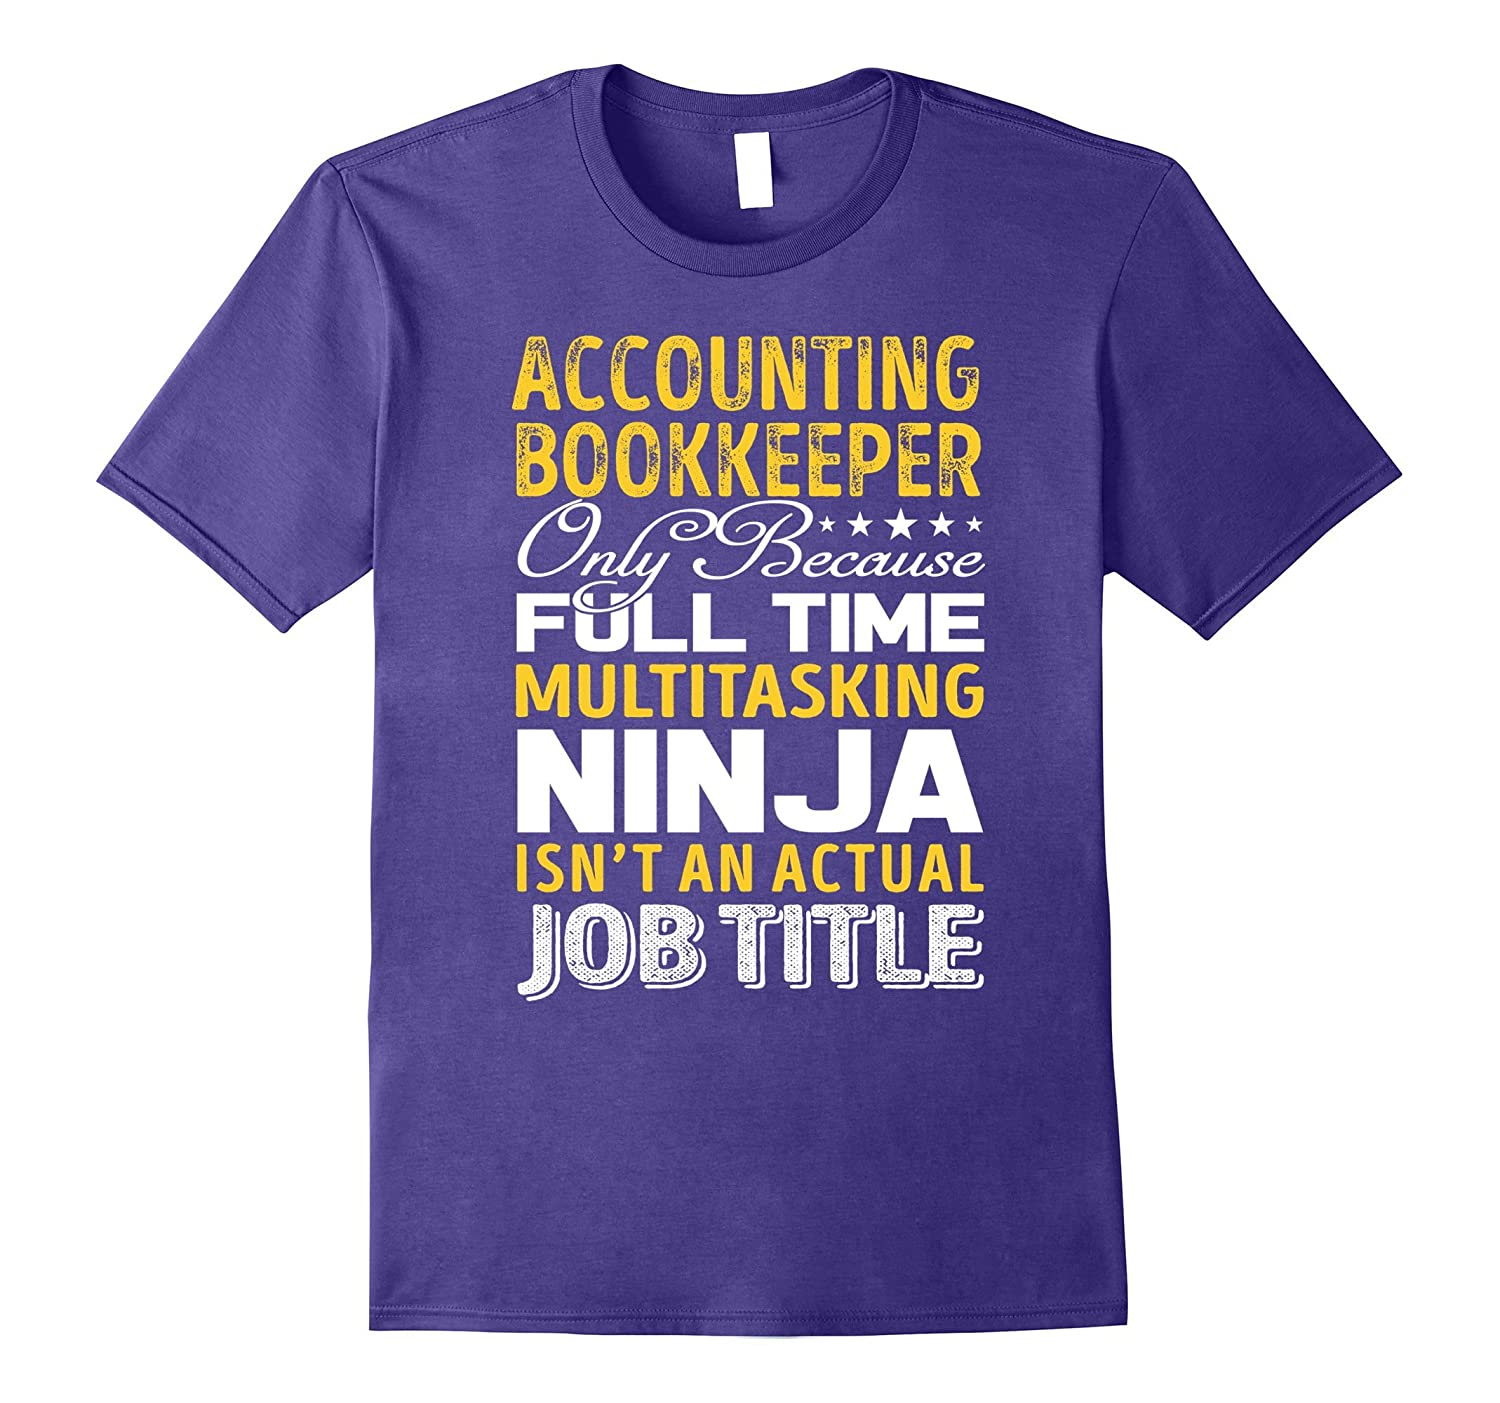 Accounting Bookkeeper Is Not An Actual Job Title TShirt-TJ